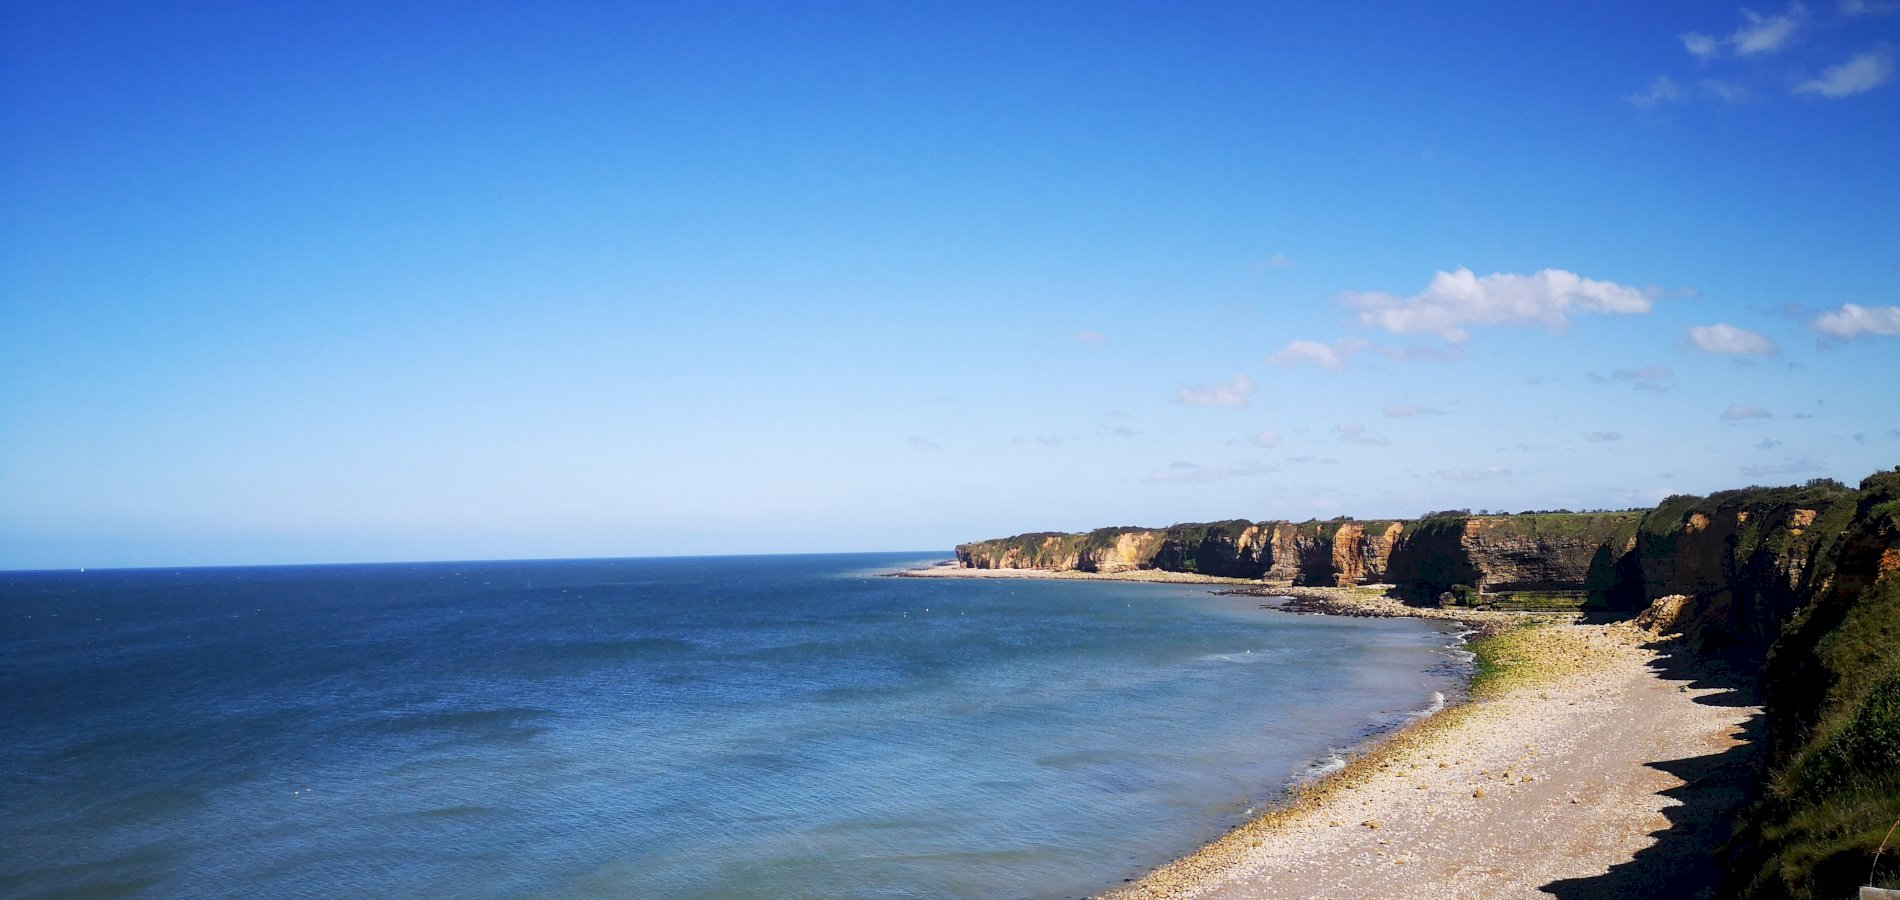 Ophorus Tours - Normandy D-DAY Beaches Small Group Private Shore Excursion from Rouen